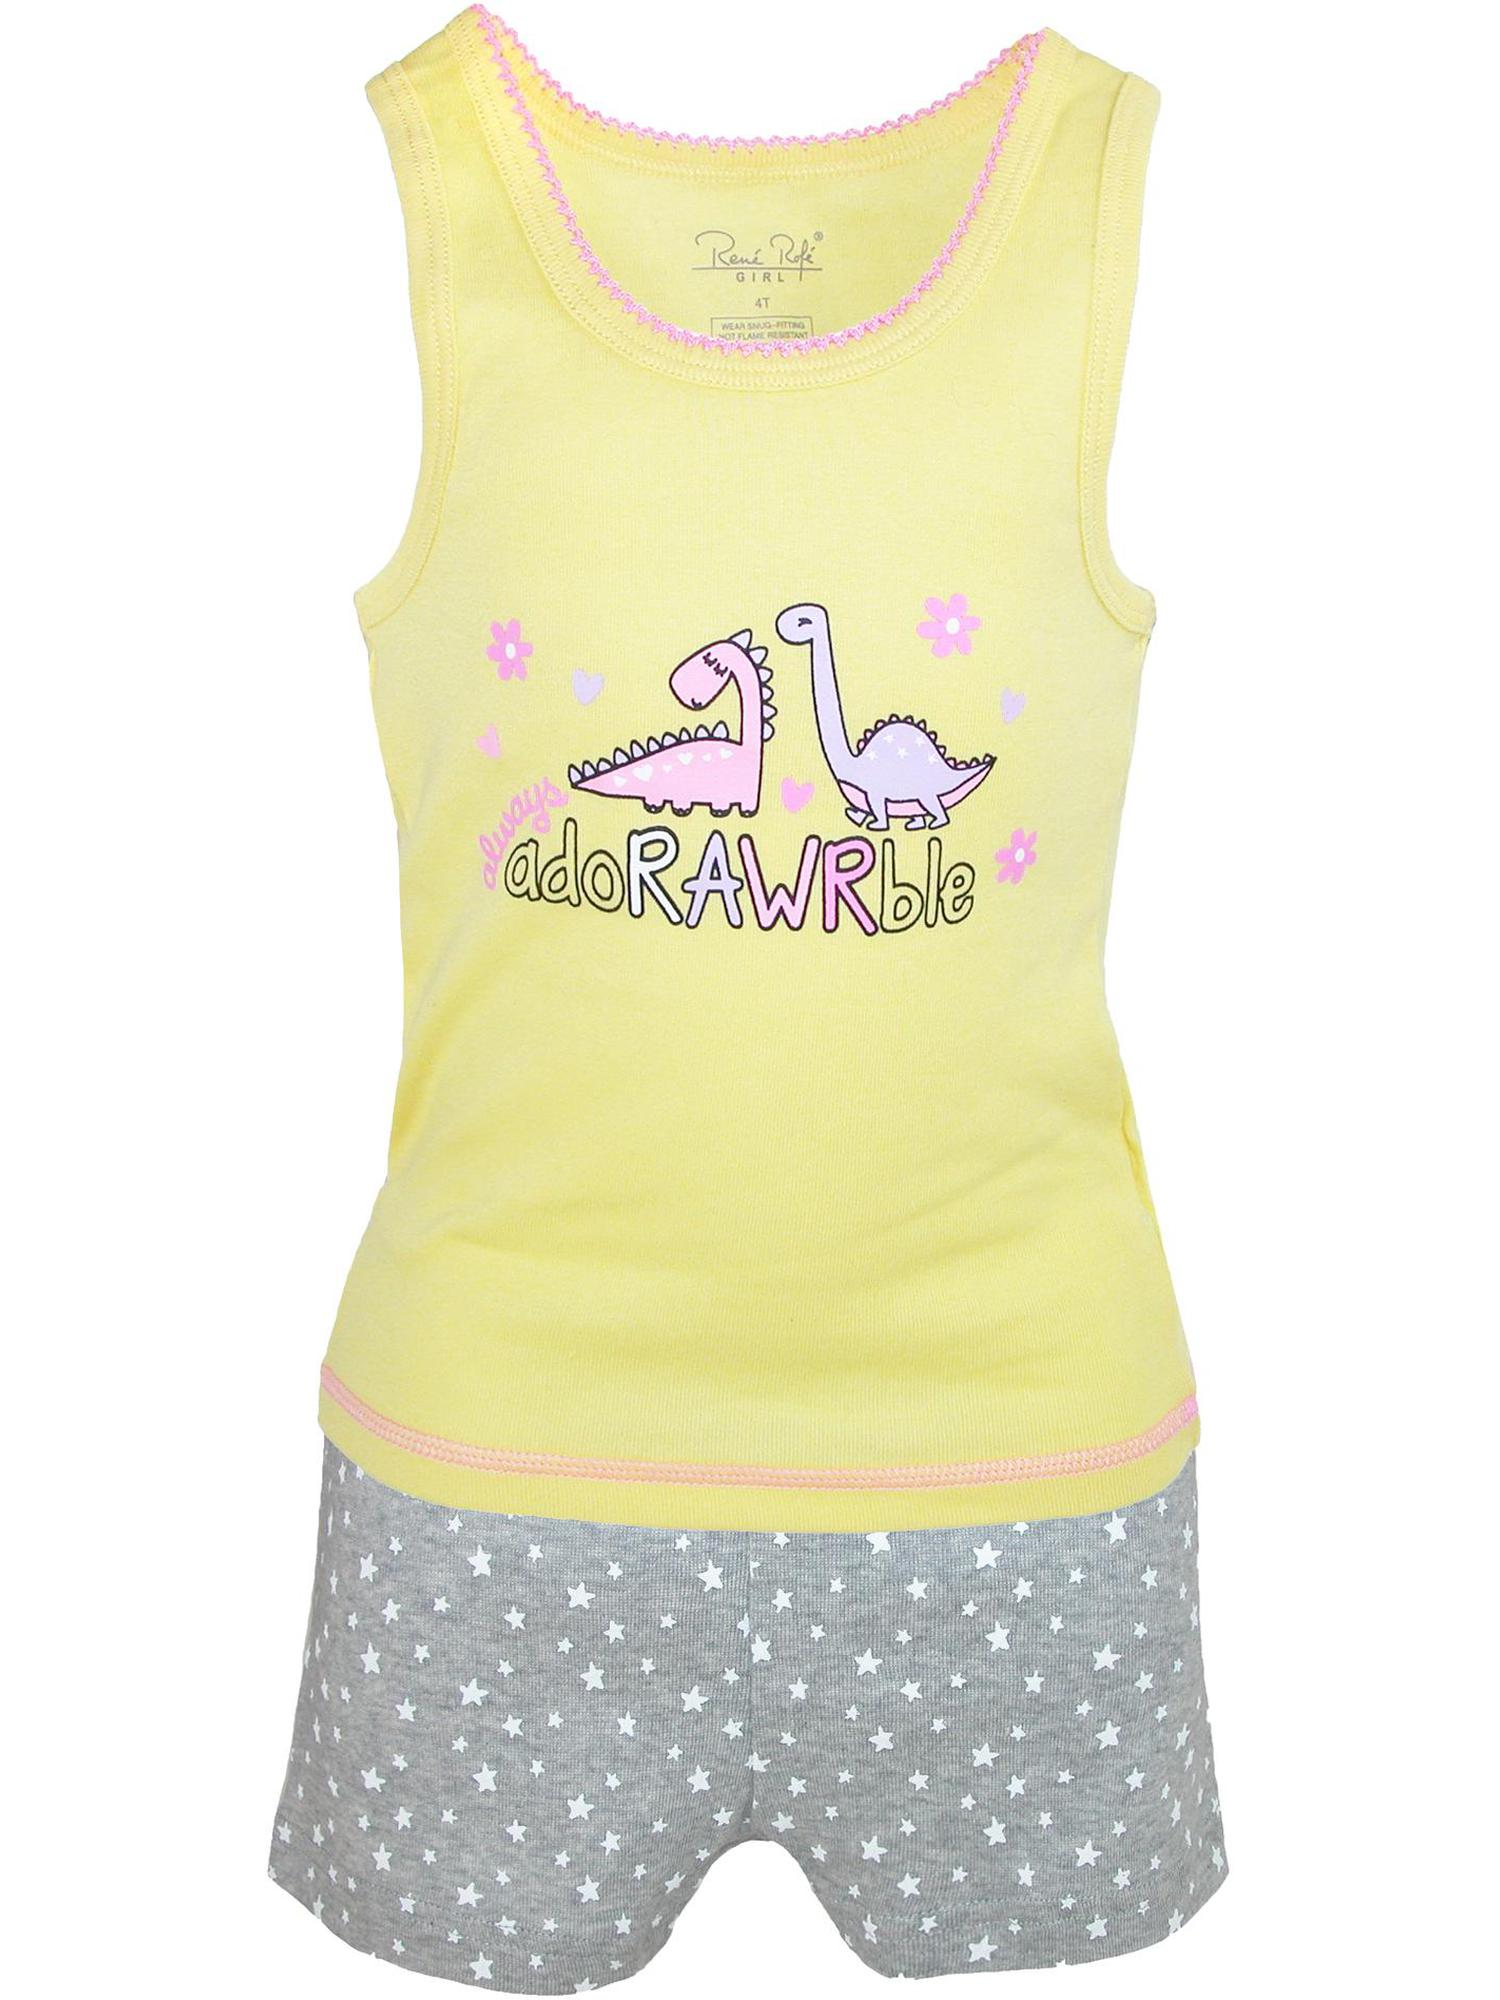 Girls' 4-Piece Mix-and-Match Sleepwear Set